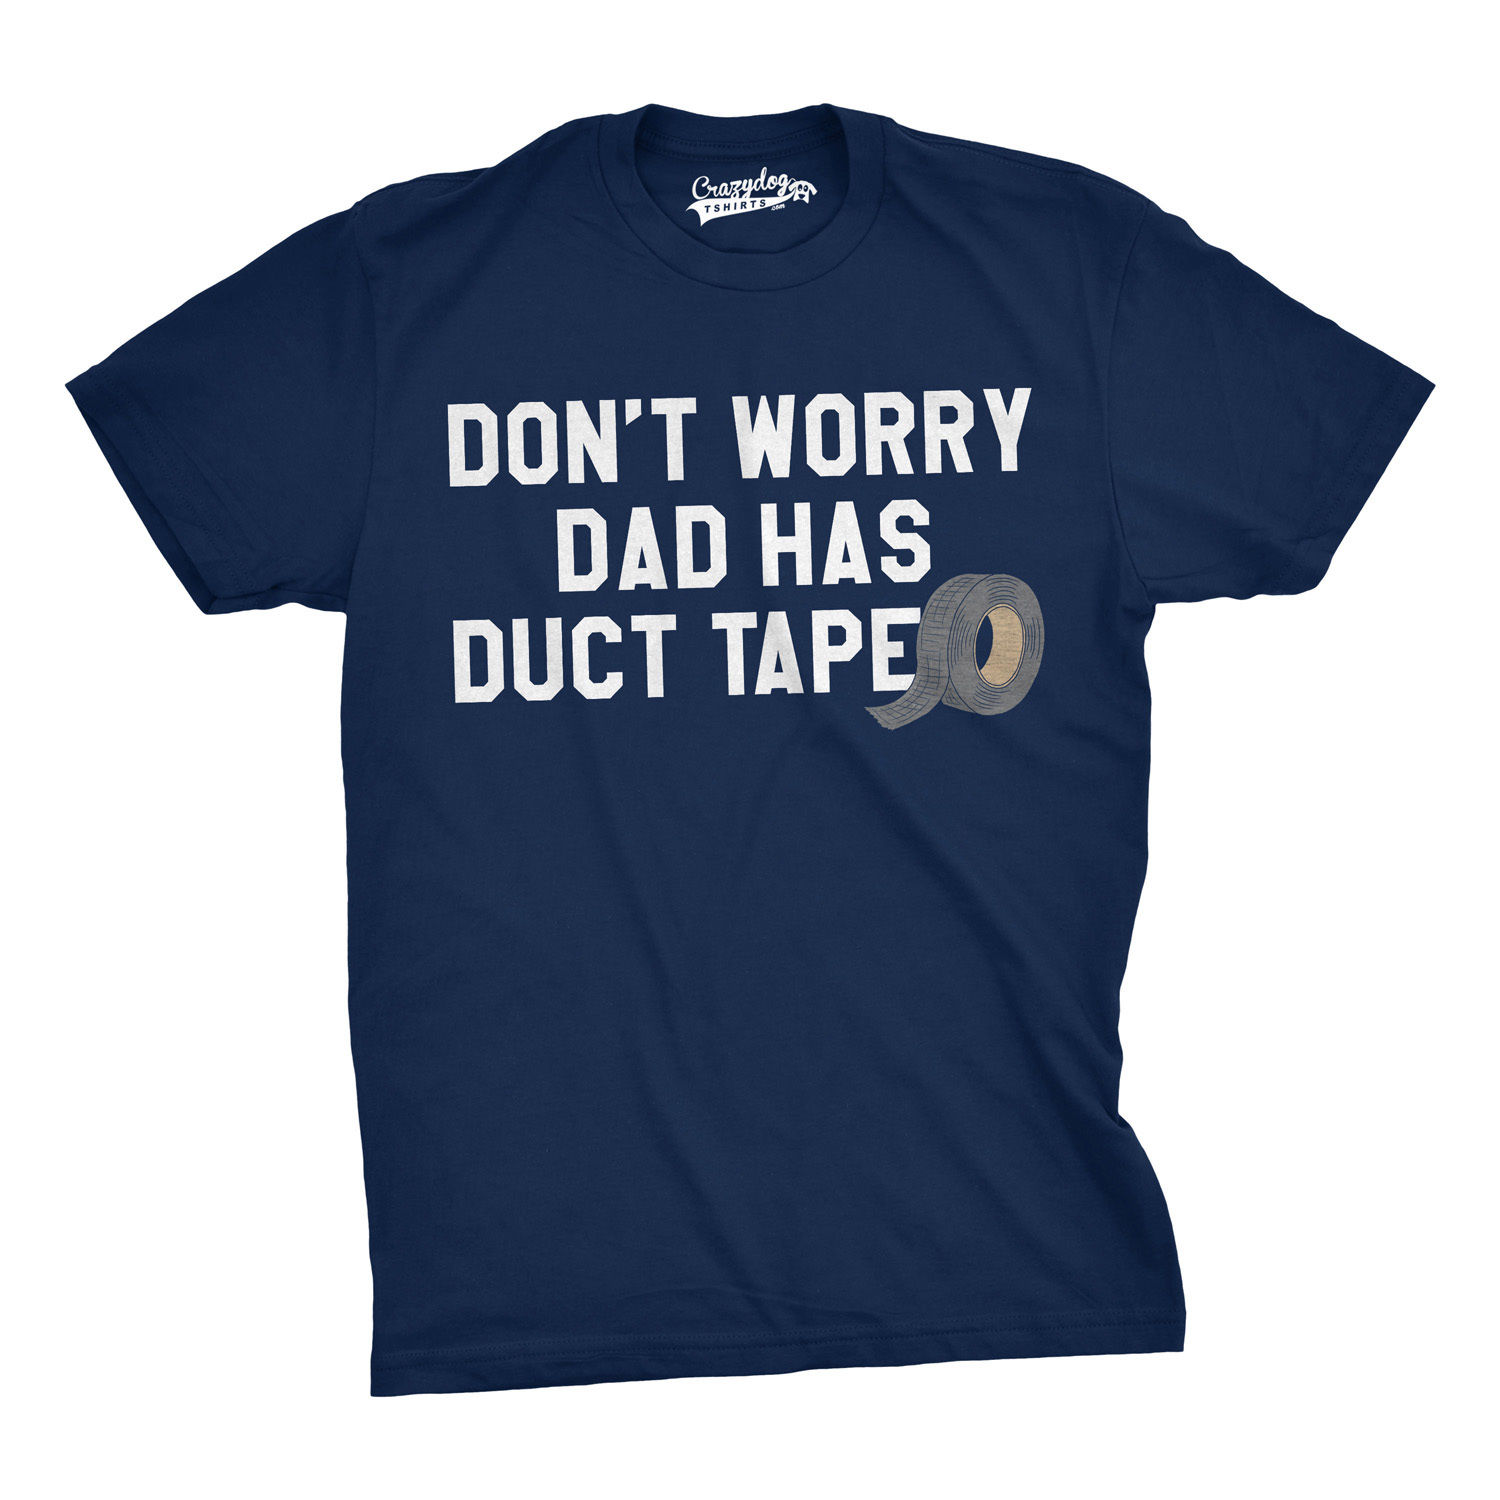 Mens Dont Worry Dad Has Duct Tape Funny Fathers Day Handman Fixit T Shirt Loose Black Men Tee Shirts Homme Tees Top